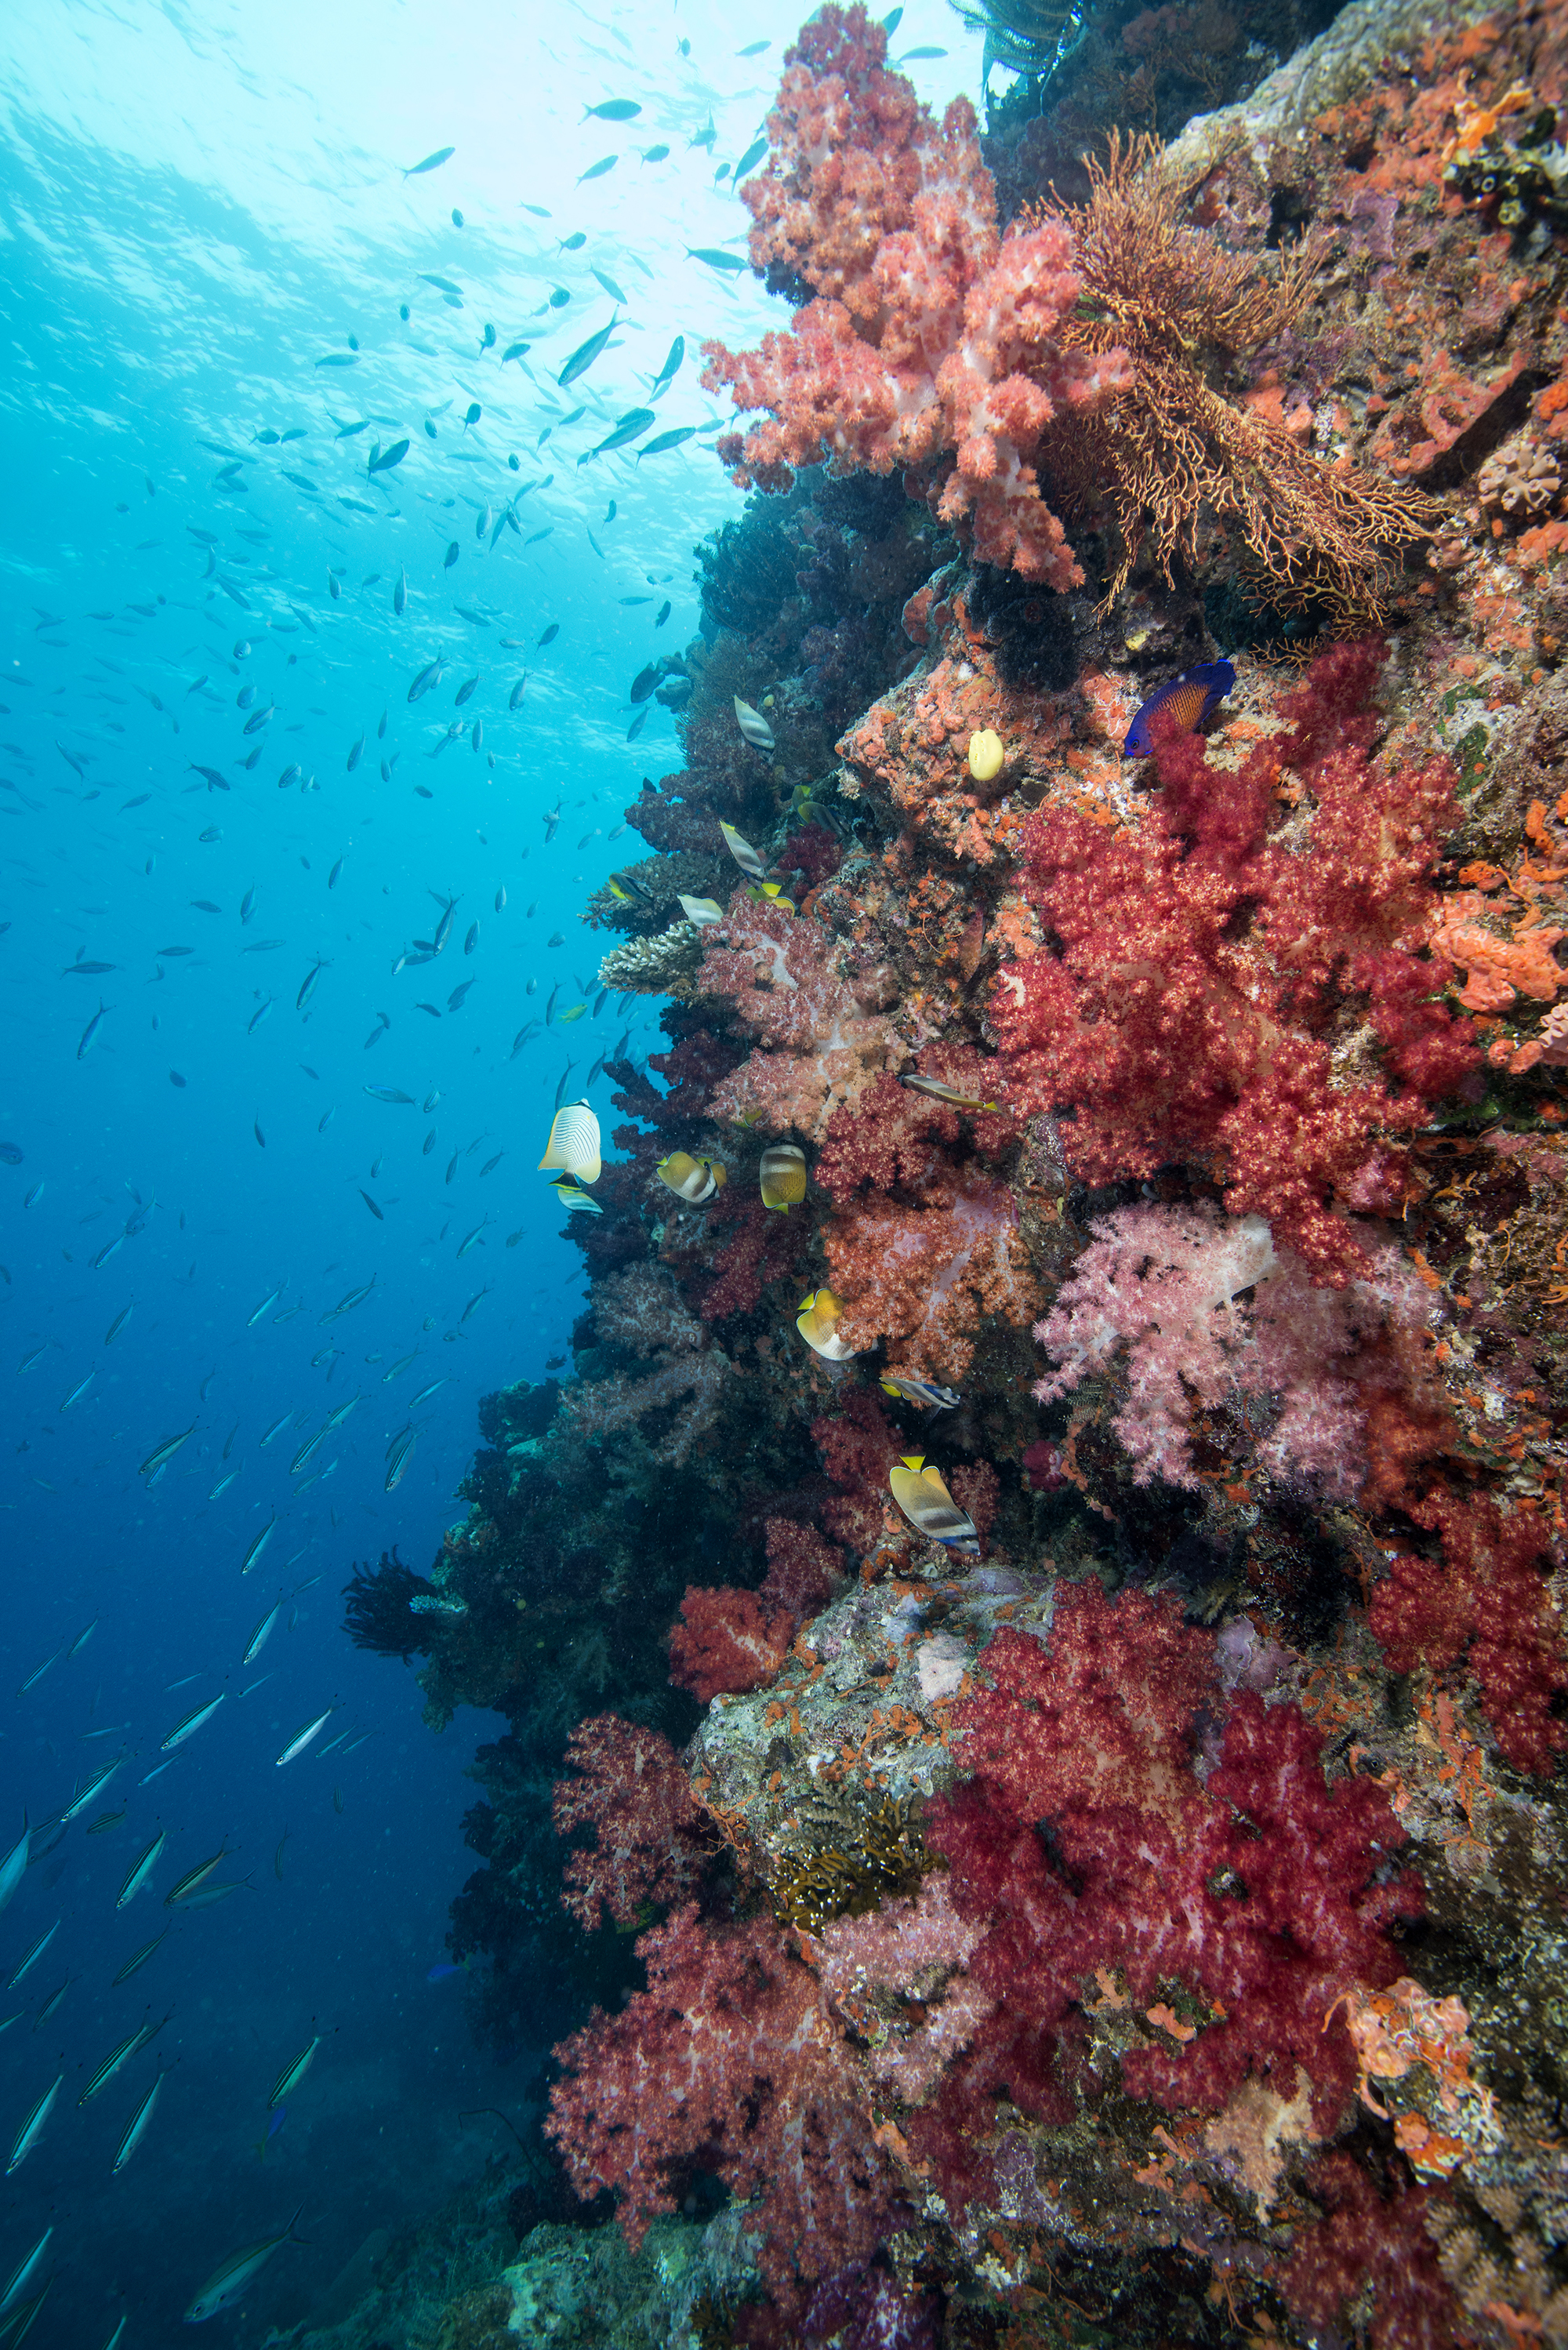 Predicting the future of coral reefs is complicated by human impacts